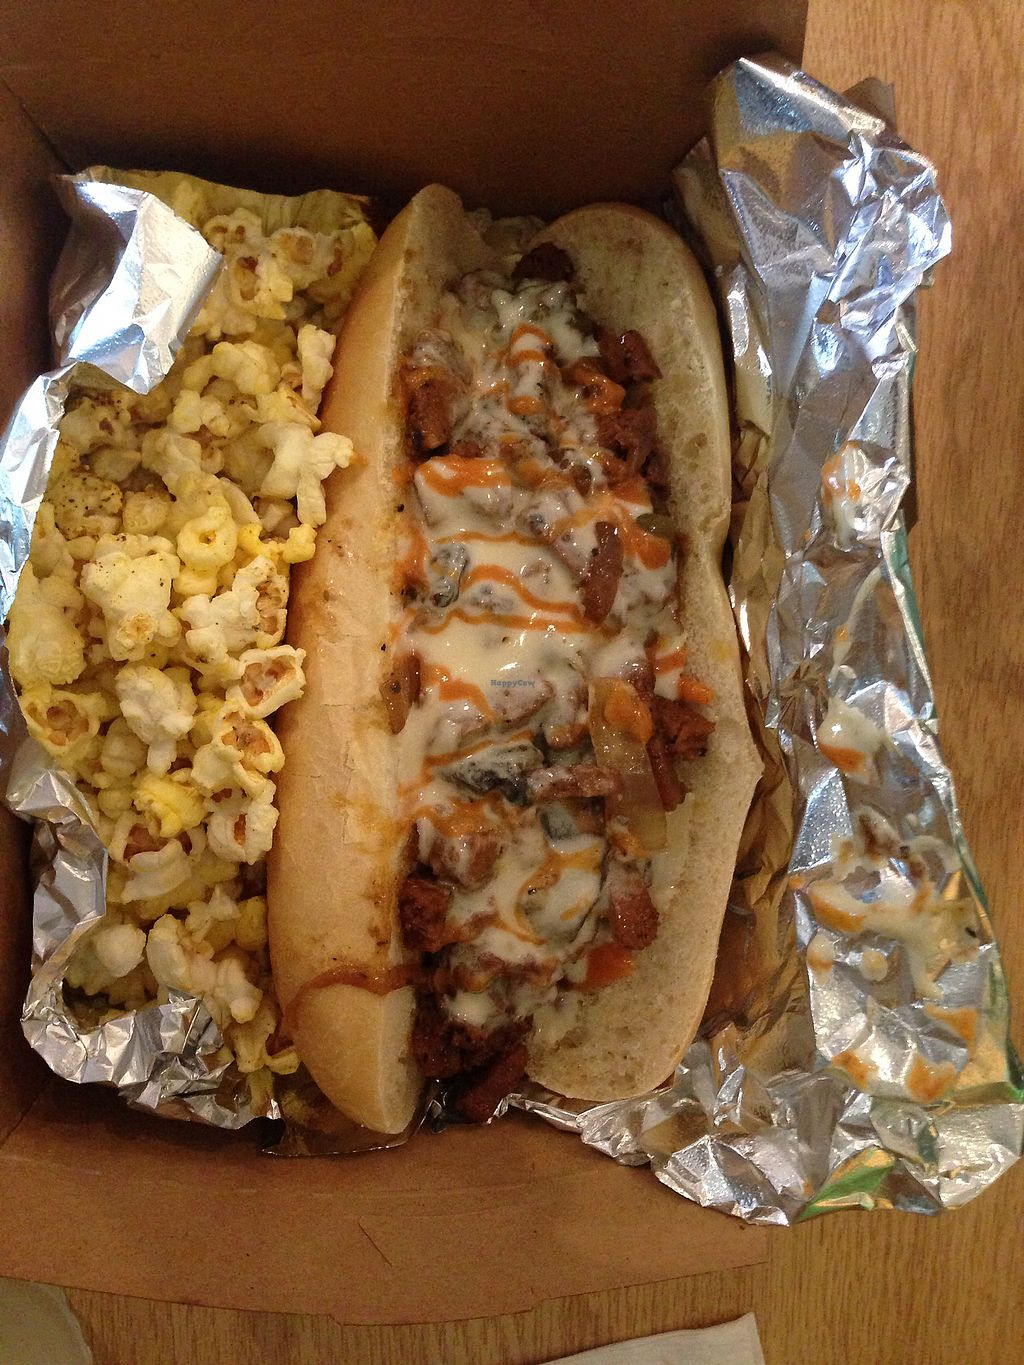 """Photo of The Grub Factory  by <a href=""""/members/profile/HannahNKhan"""">HannahNKhan</a> <br/>cheese steak  <br/> July 2, 2017  - <a href='/contact/abuse/image/90385/275932'>Report</a>"""